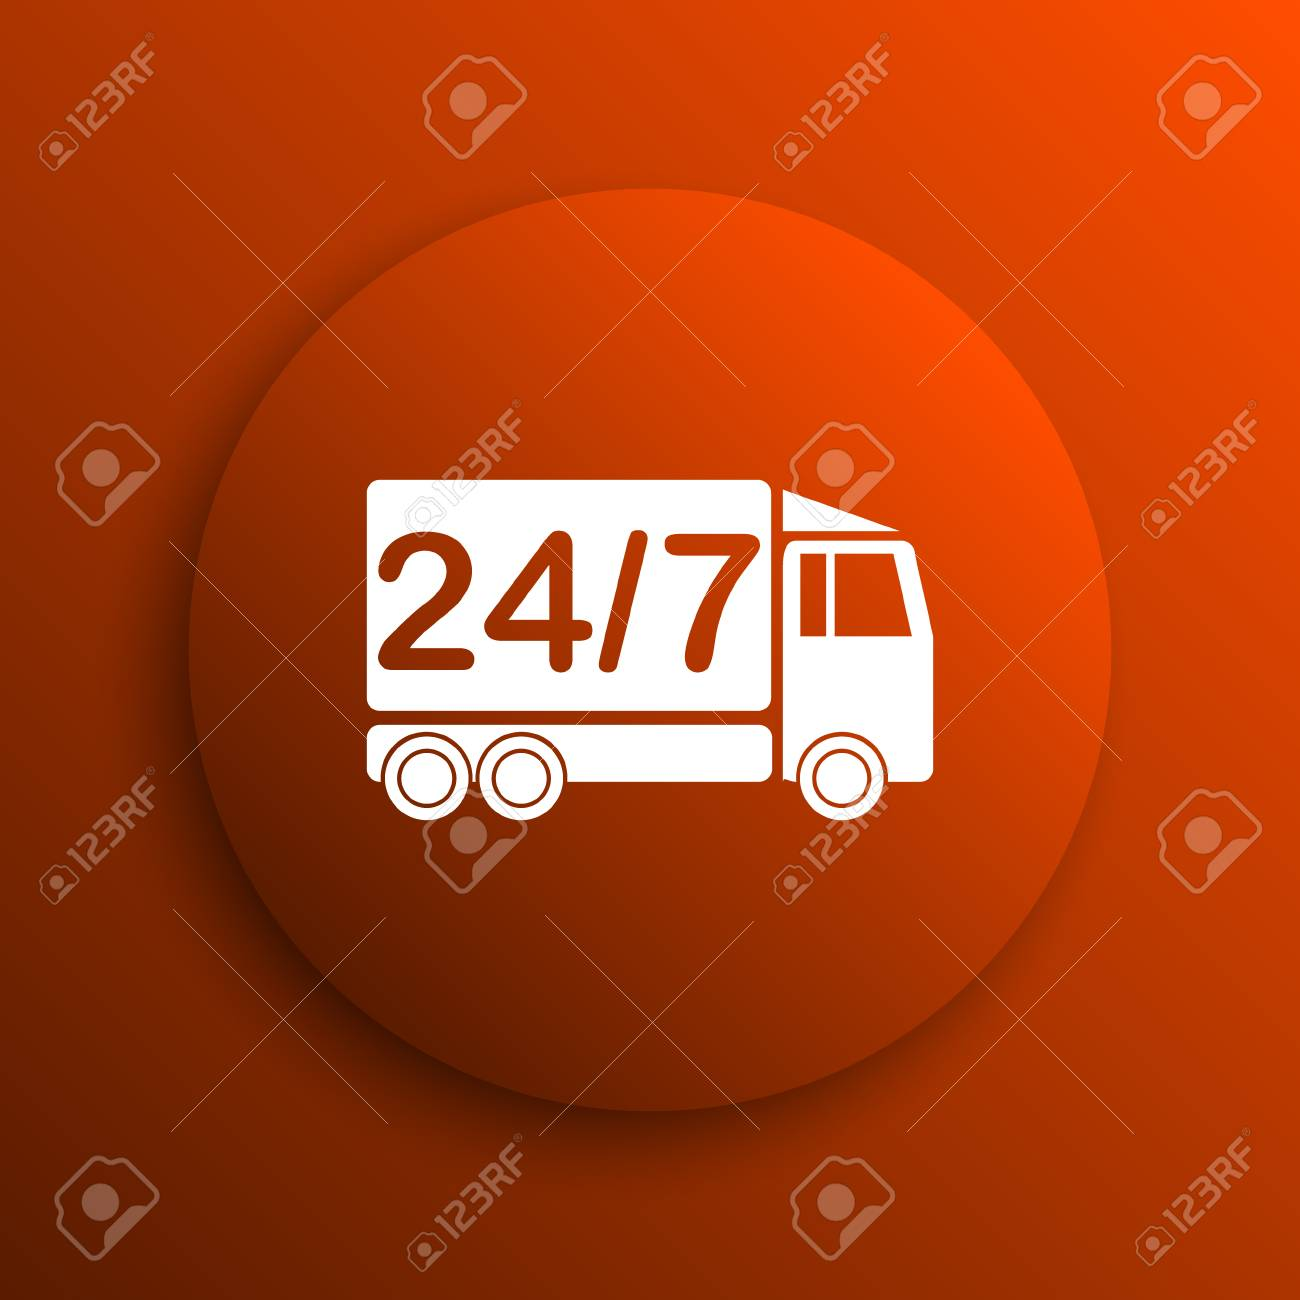 24 7 Delivery Truck Icon Internet Button On Orange Background